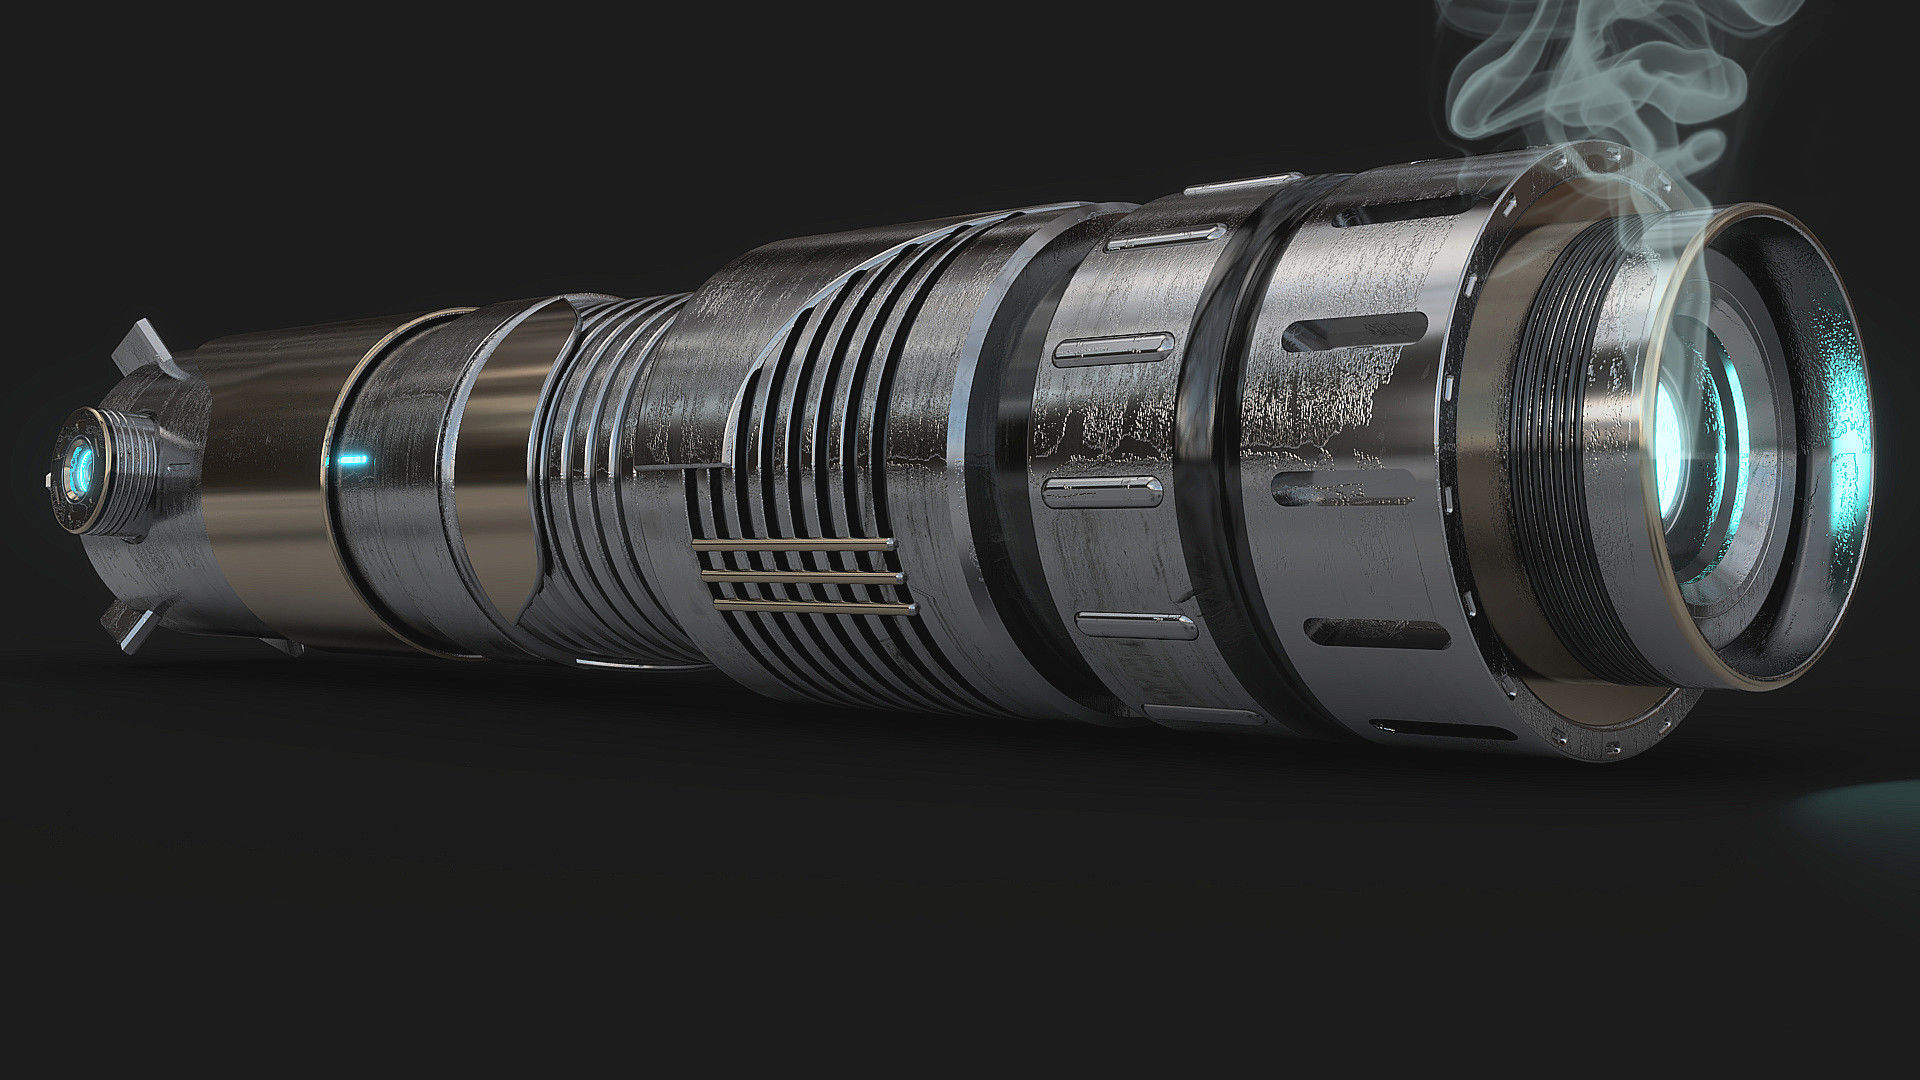 Joaquin-bozicovich-lightsaber-portfo-2018-feb-02-03-42-41am-000-customizedview20885121377-jpeg-3500-3500